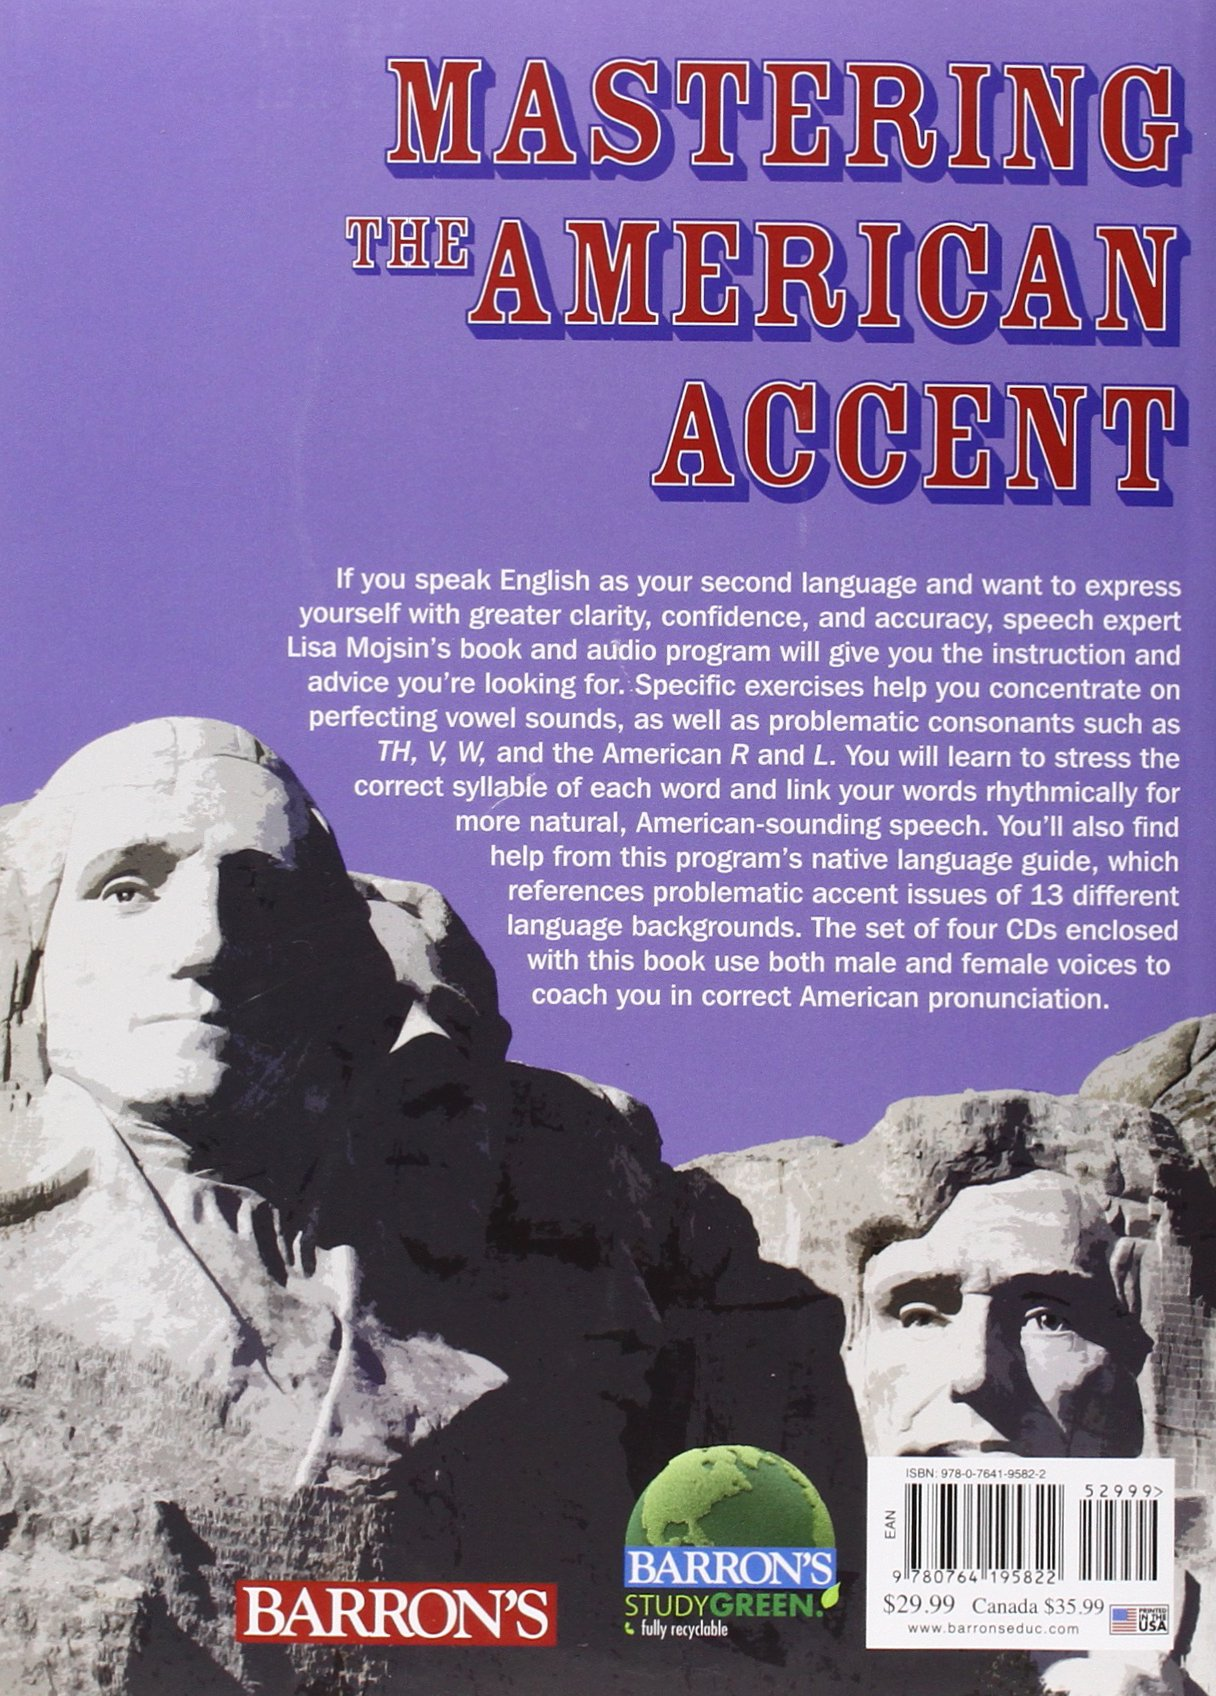 Buy Mastering the American Accent Book Online at Low Prices in India    Mastering the American Accent Reviews & Ratings - Amazon.in